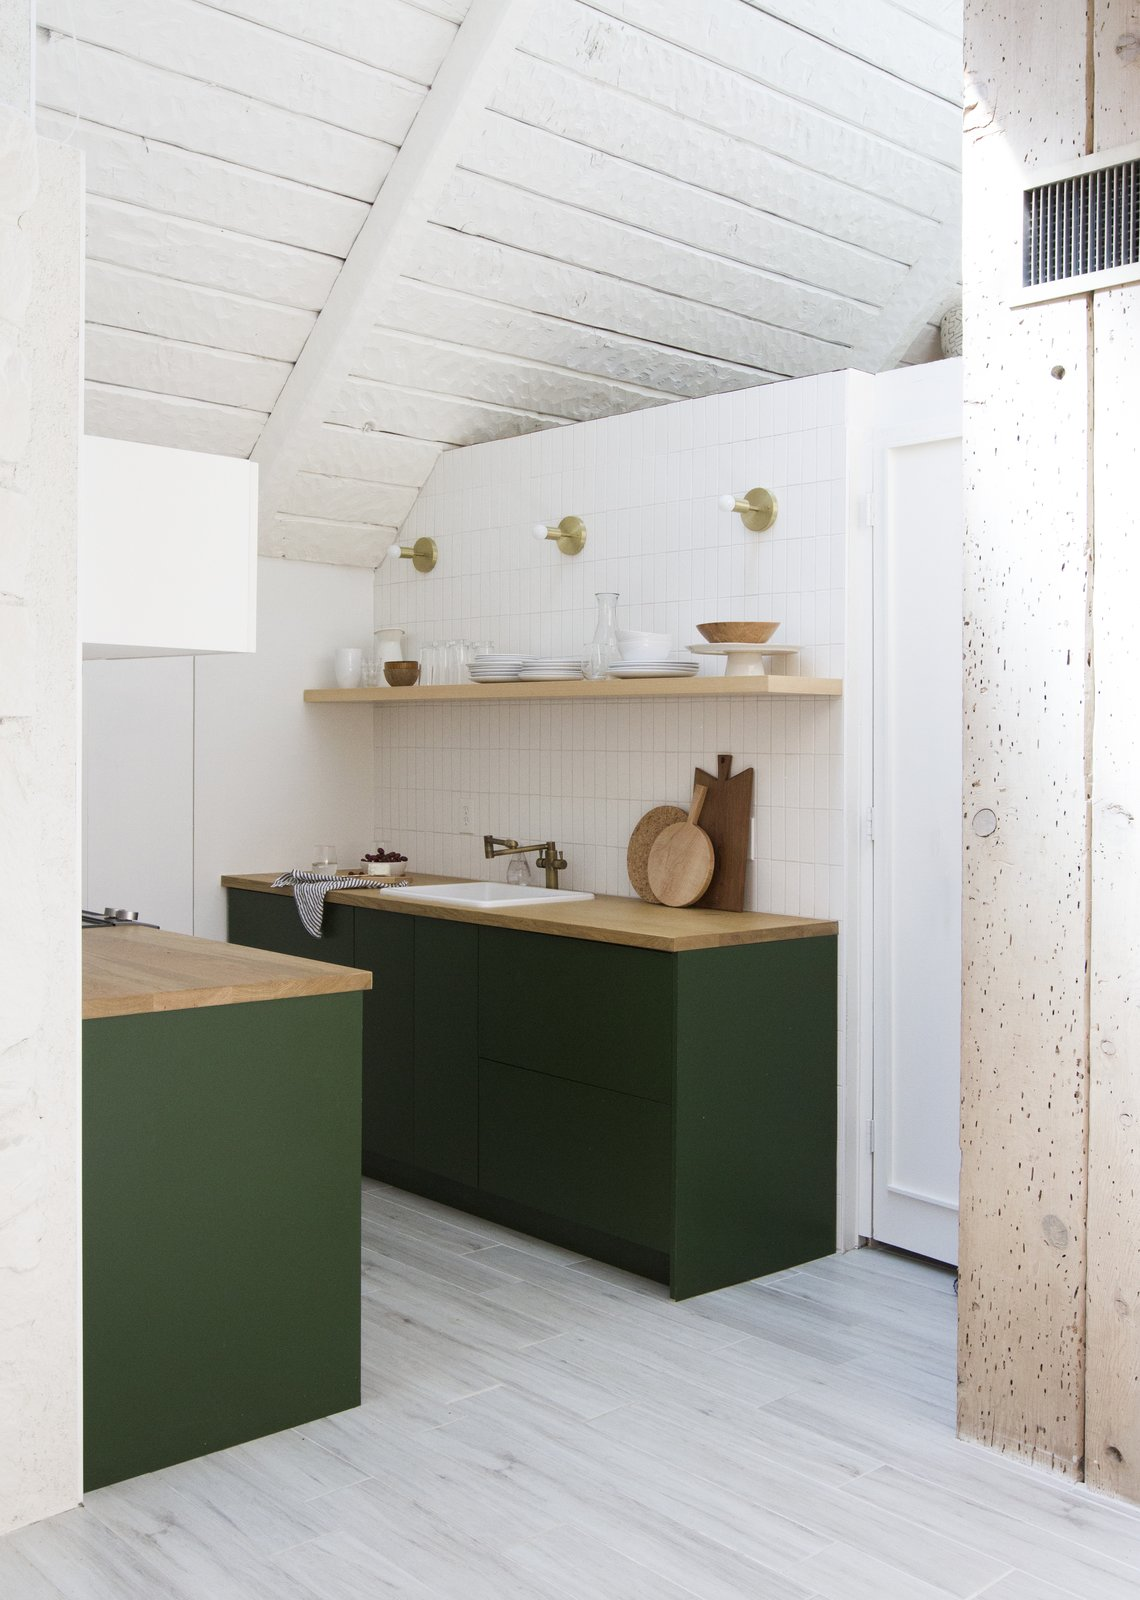 A view into the kitchen, which received IKEA cabinet boxes with Semihandmade drawer and door fronts painted Chard from Behr, by Samuel. The refrigerator is a KitchenAid model tucked under the butcher block counter and covered with a panel.